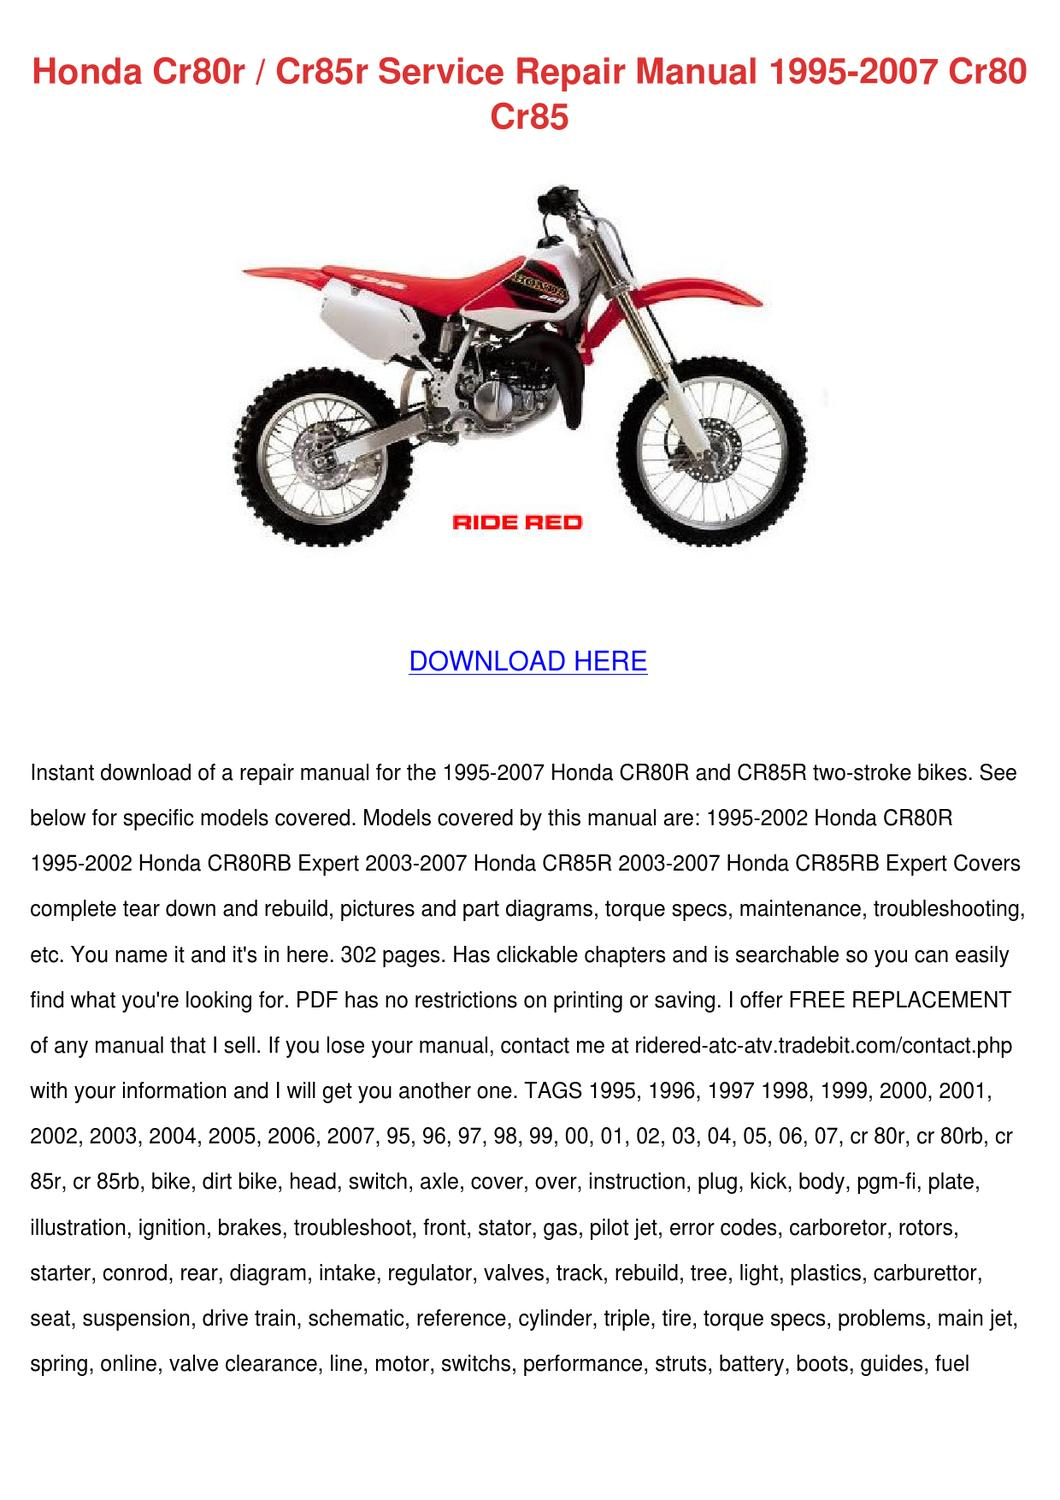 Honda Cr80 Engine Diagram - Catalogue of Schemas on